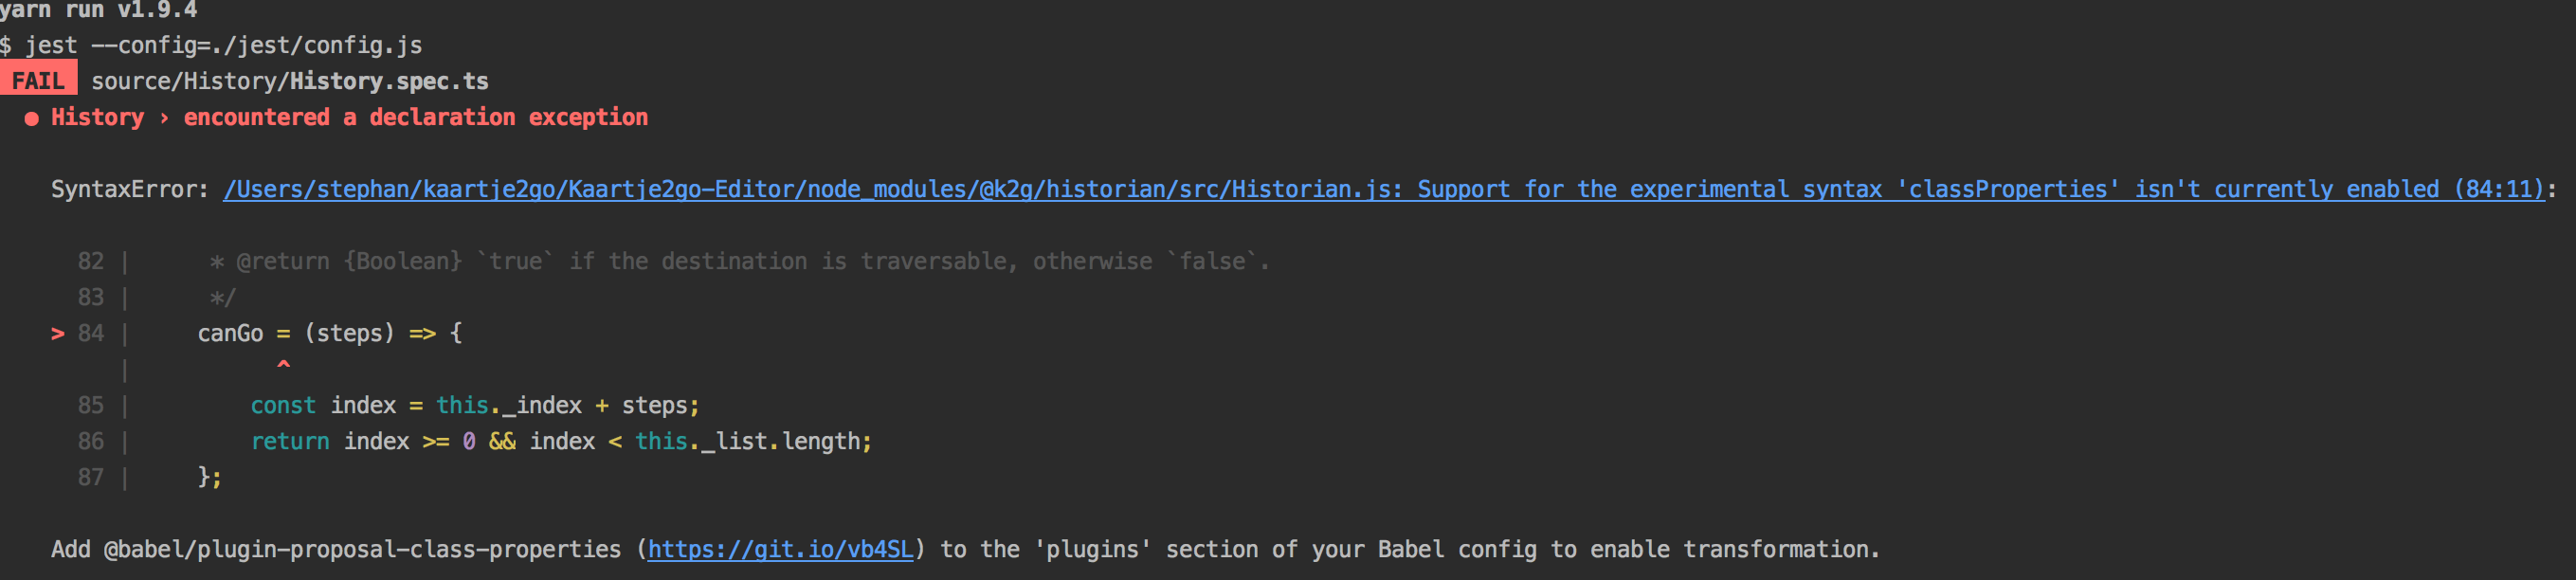 babel/plugin-proposal-class-properties is ignored in